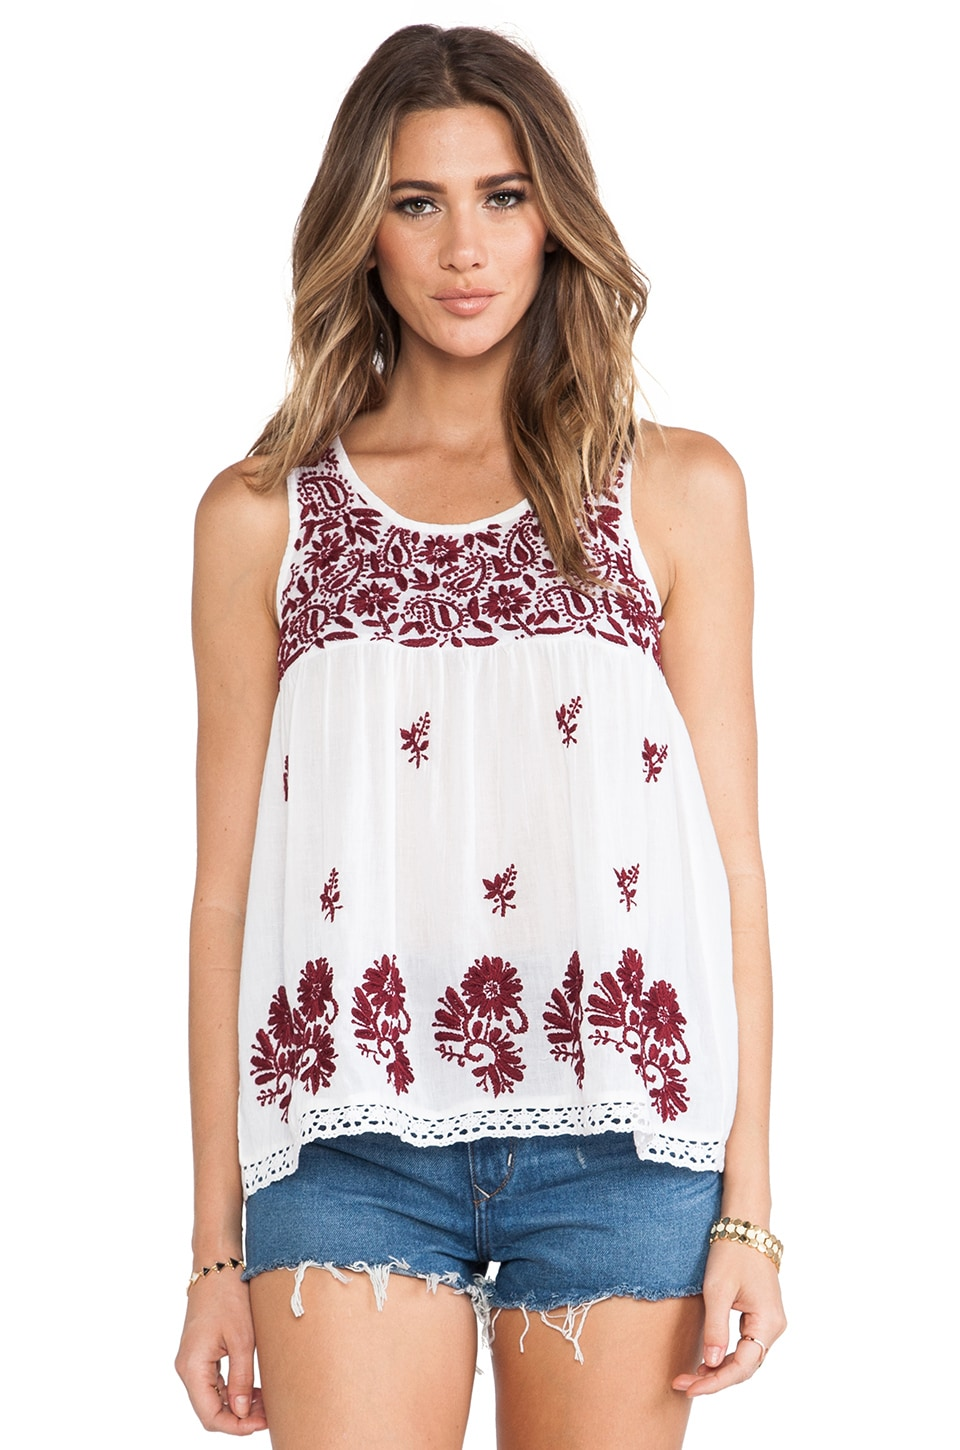 Raga Embroidered Tank Top in Maroon